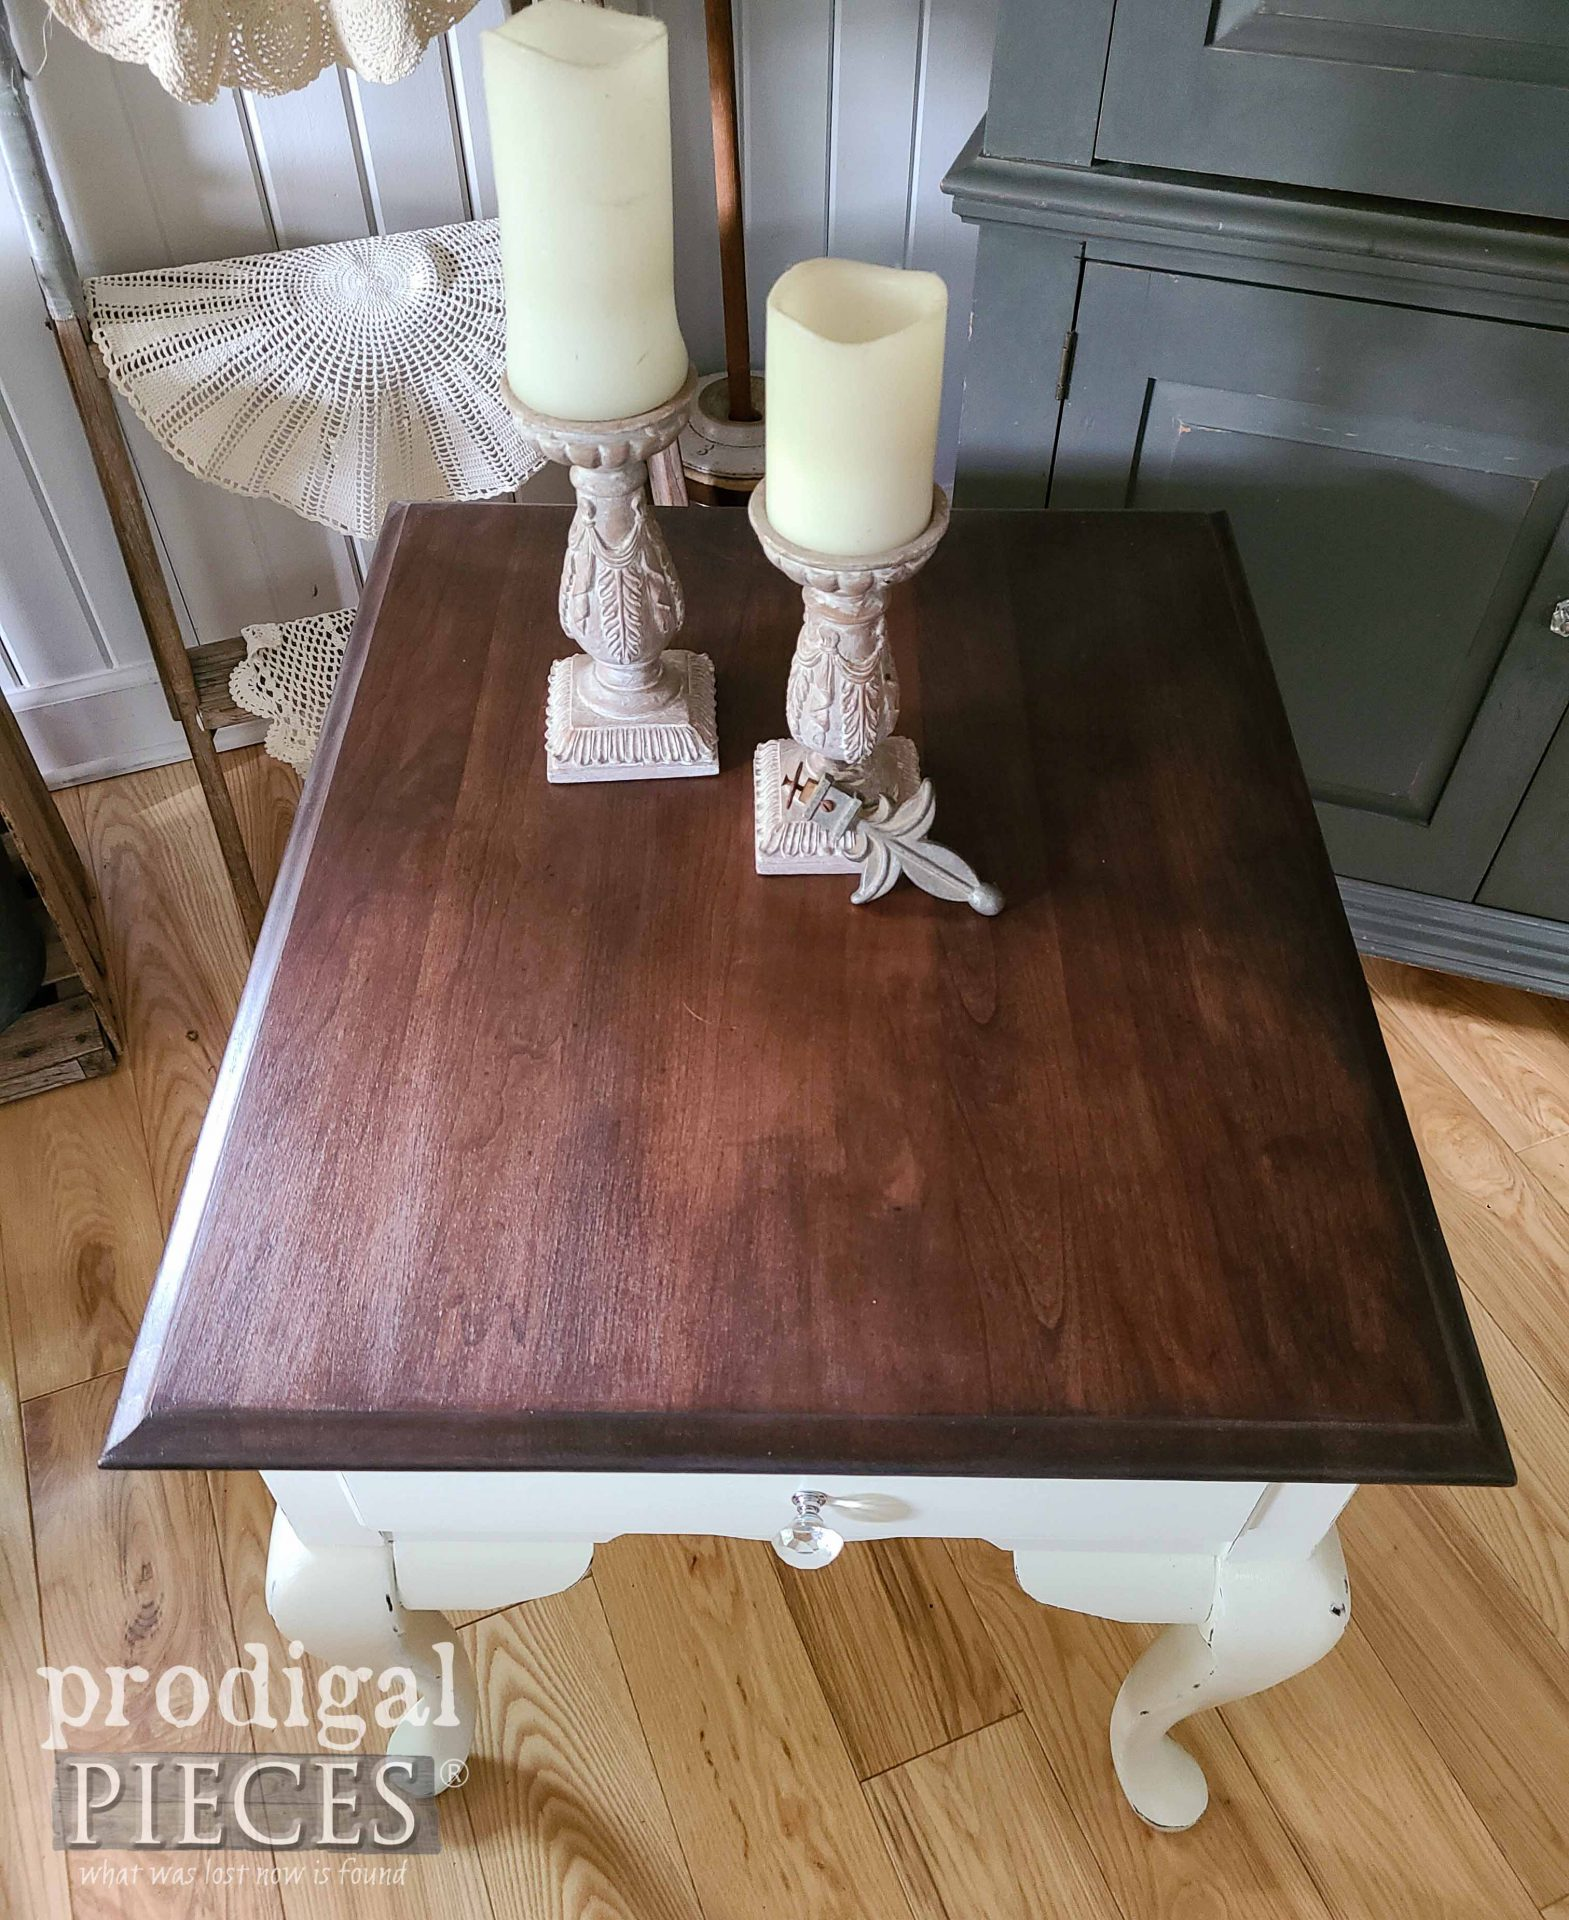 Vintage Queen Anne Table Top Refinished with Java Gel by Prodigal Pieces | prodigalpieces.com #prodigalpieces #furniture #home #diy